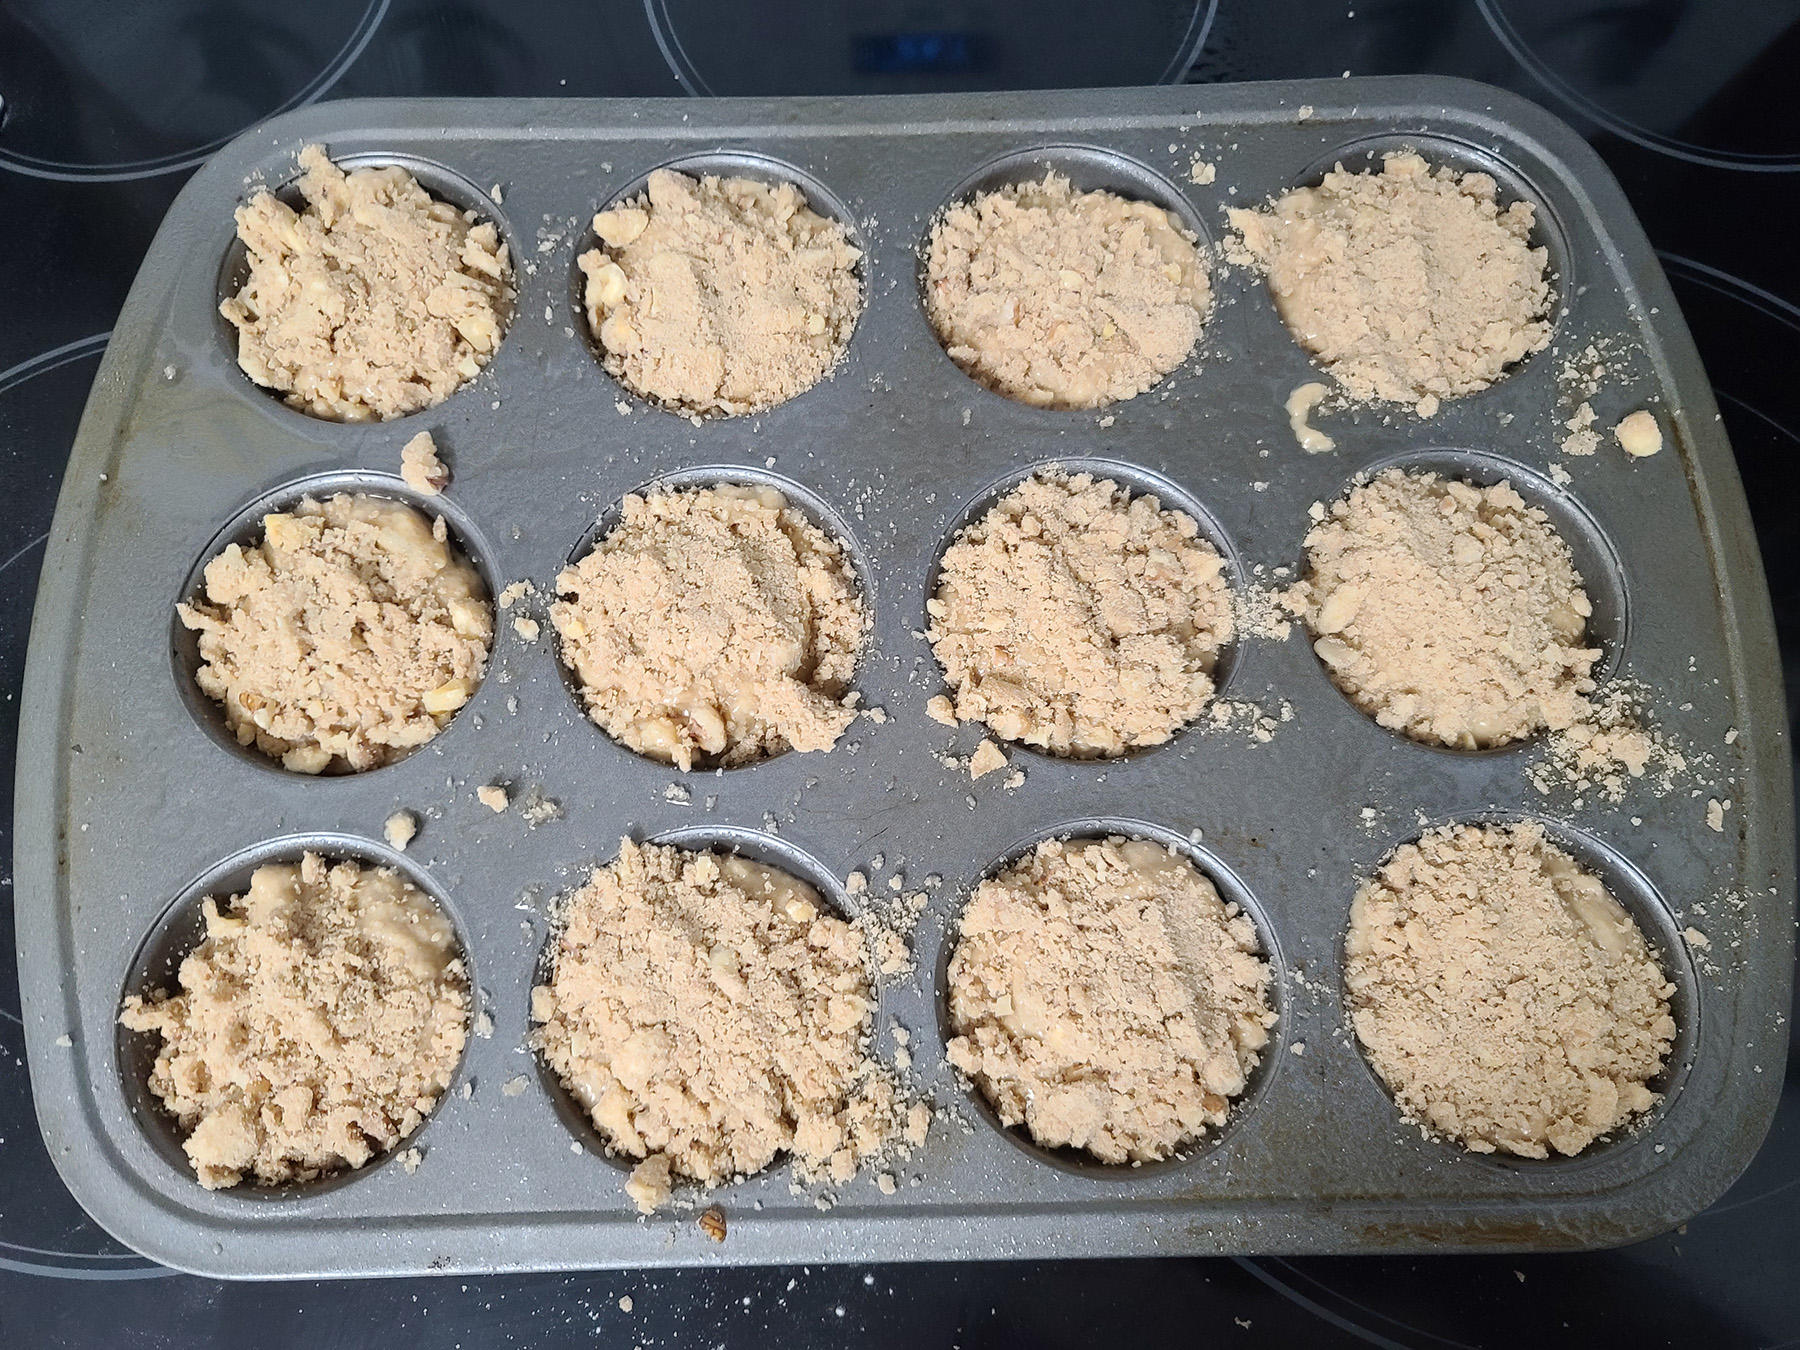 The batter in the muffin pan, with each cavity topped with streusel.